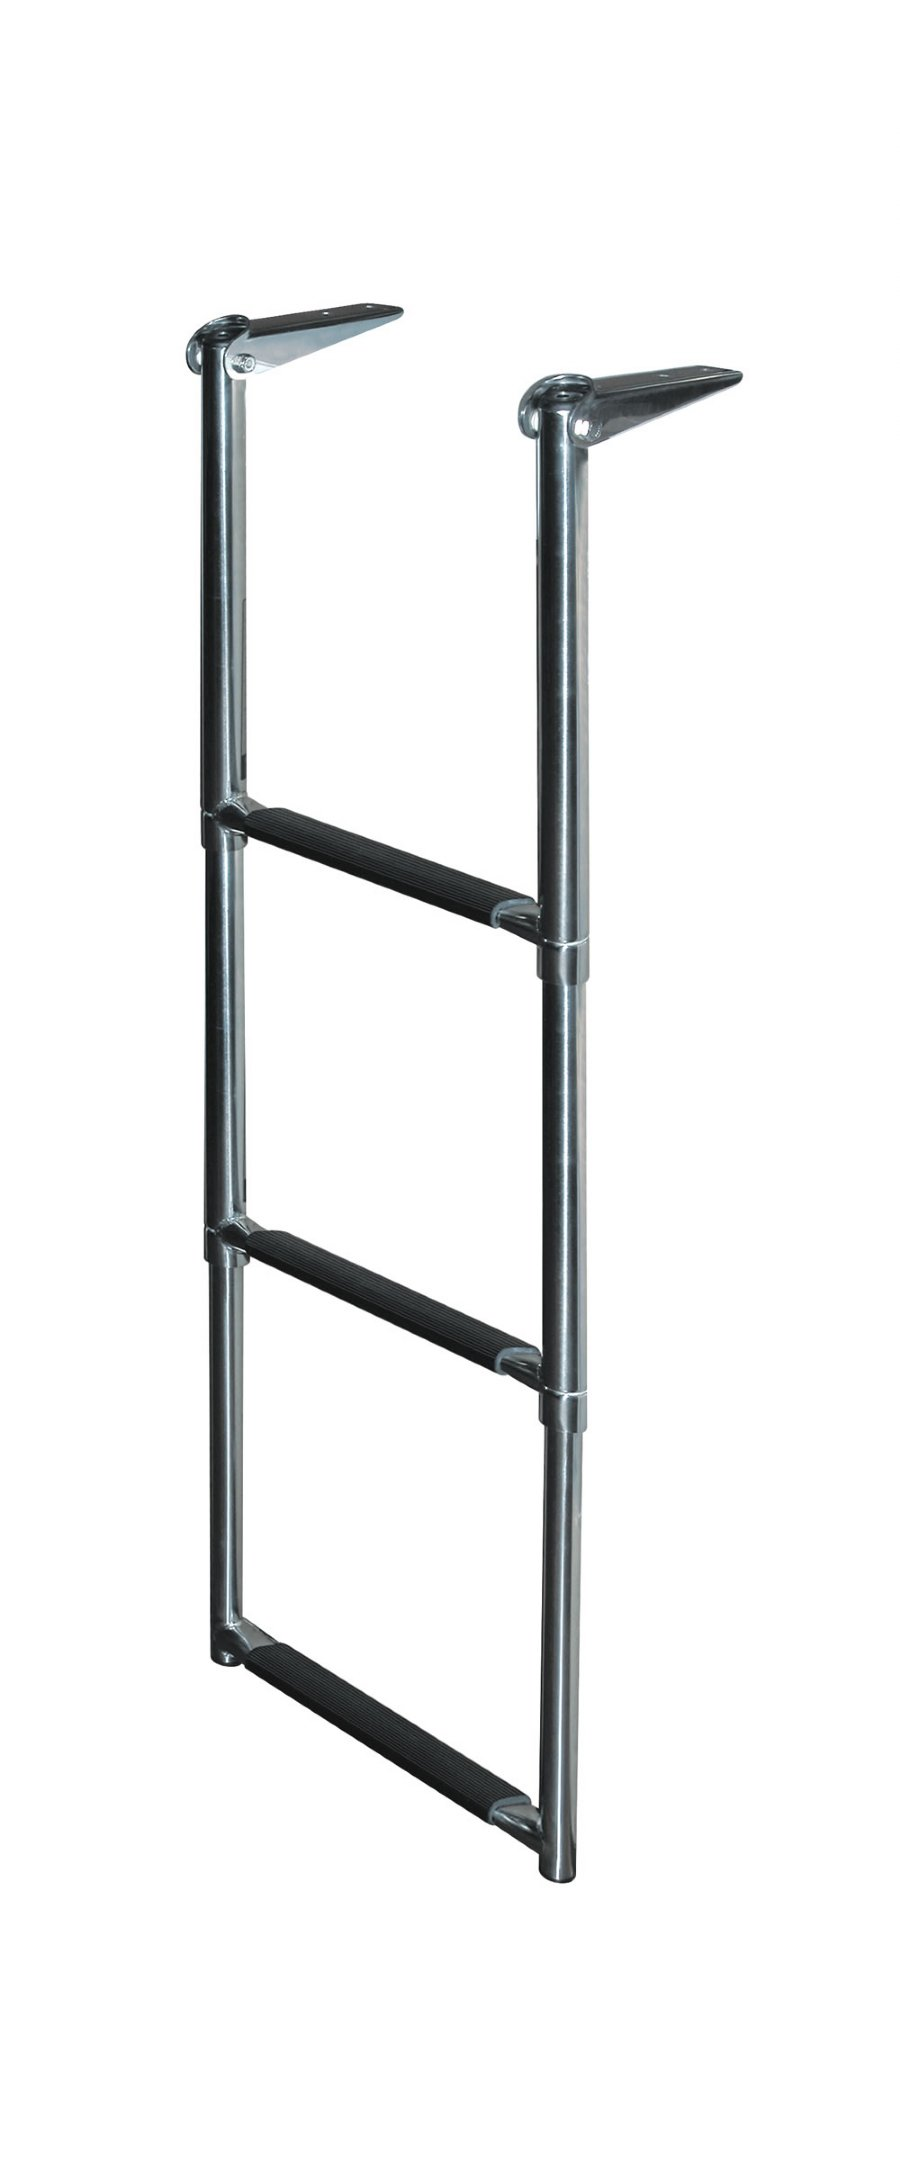 3 Step Stainless Steel Telescoping Transom Drop Ladders